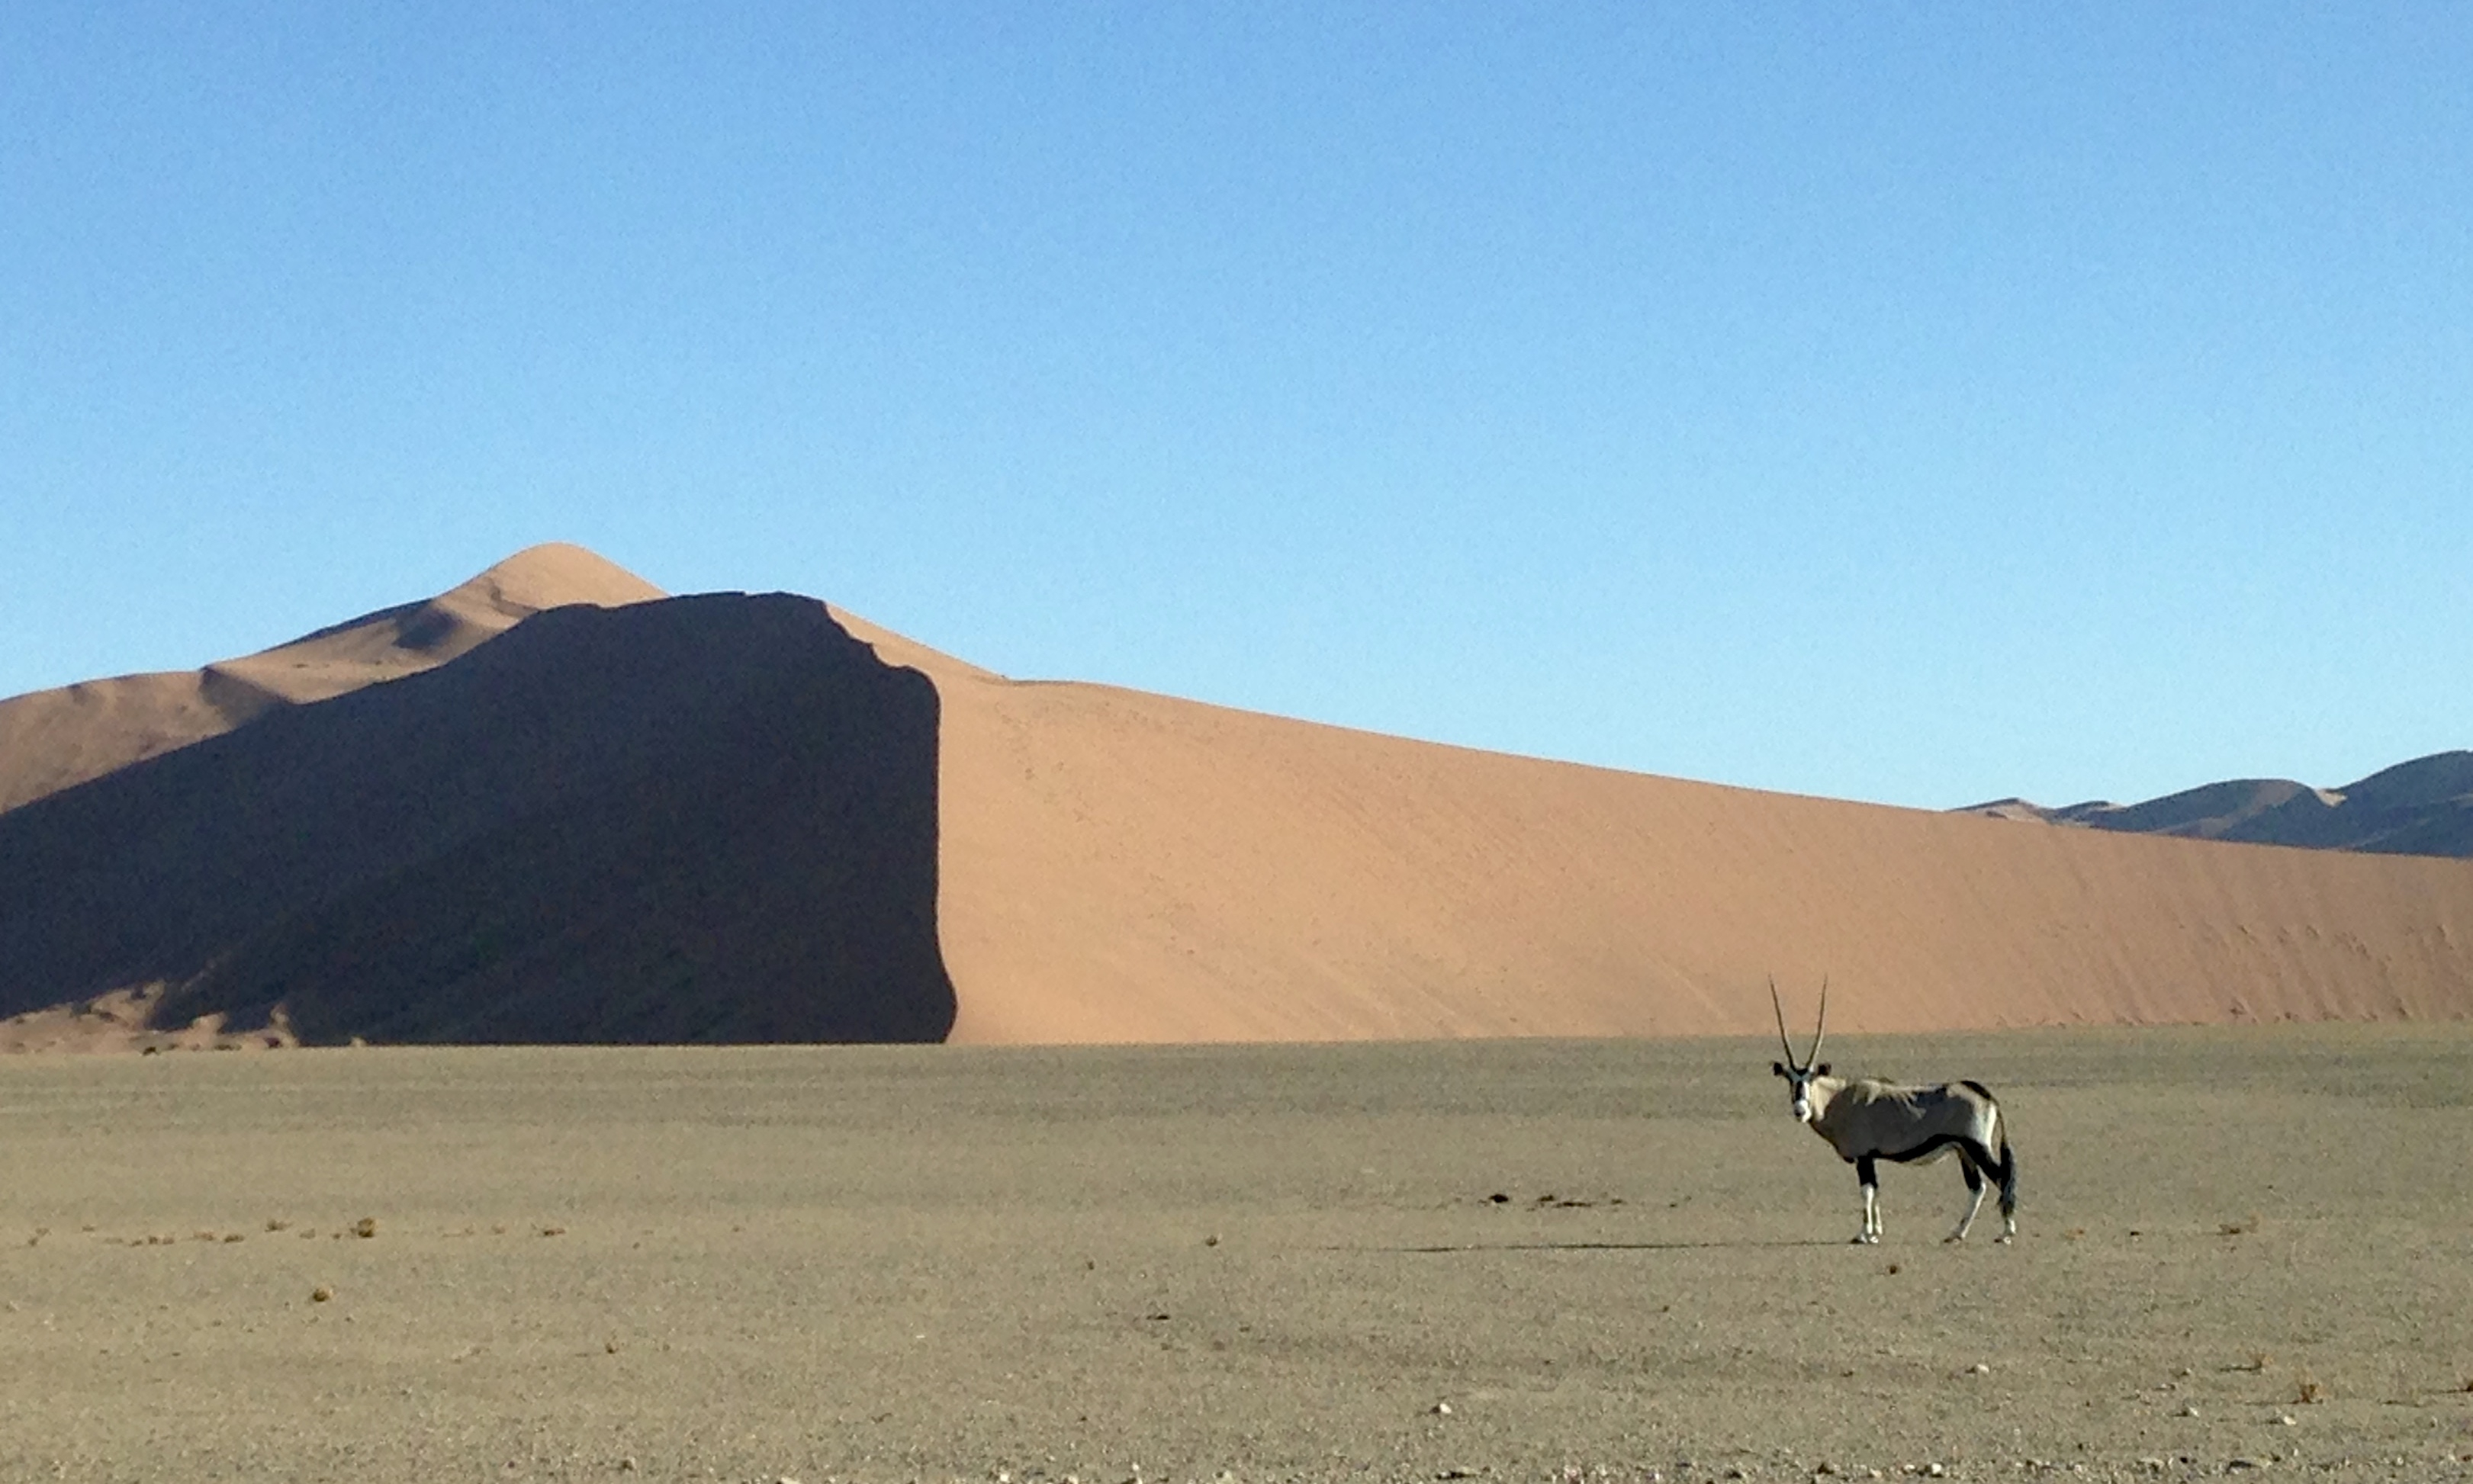 Oryx stands alone in front of a red sand due and blue sky